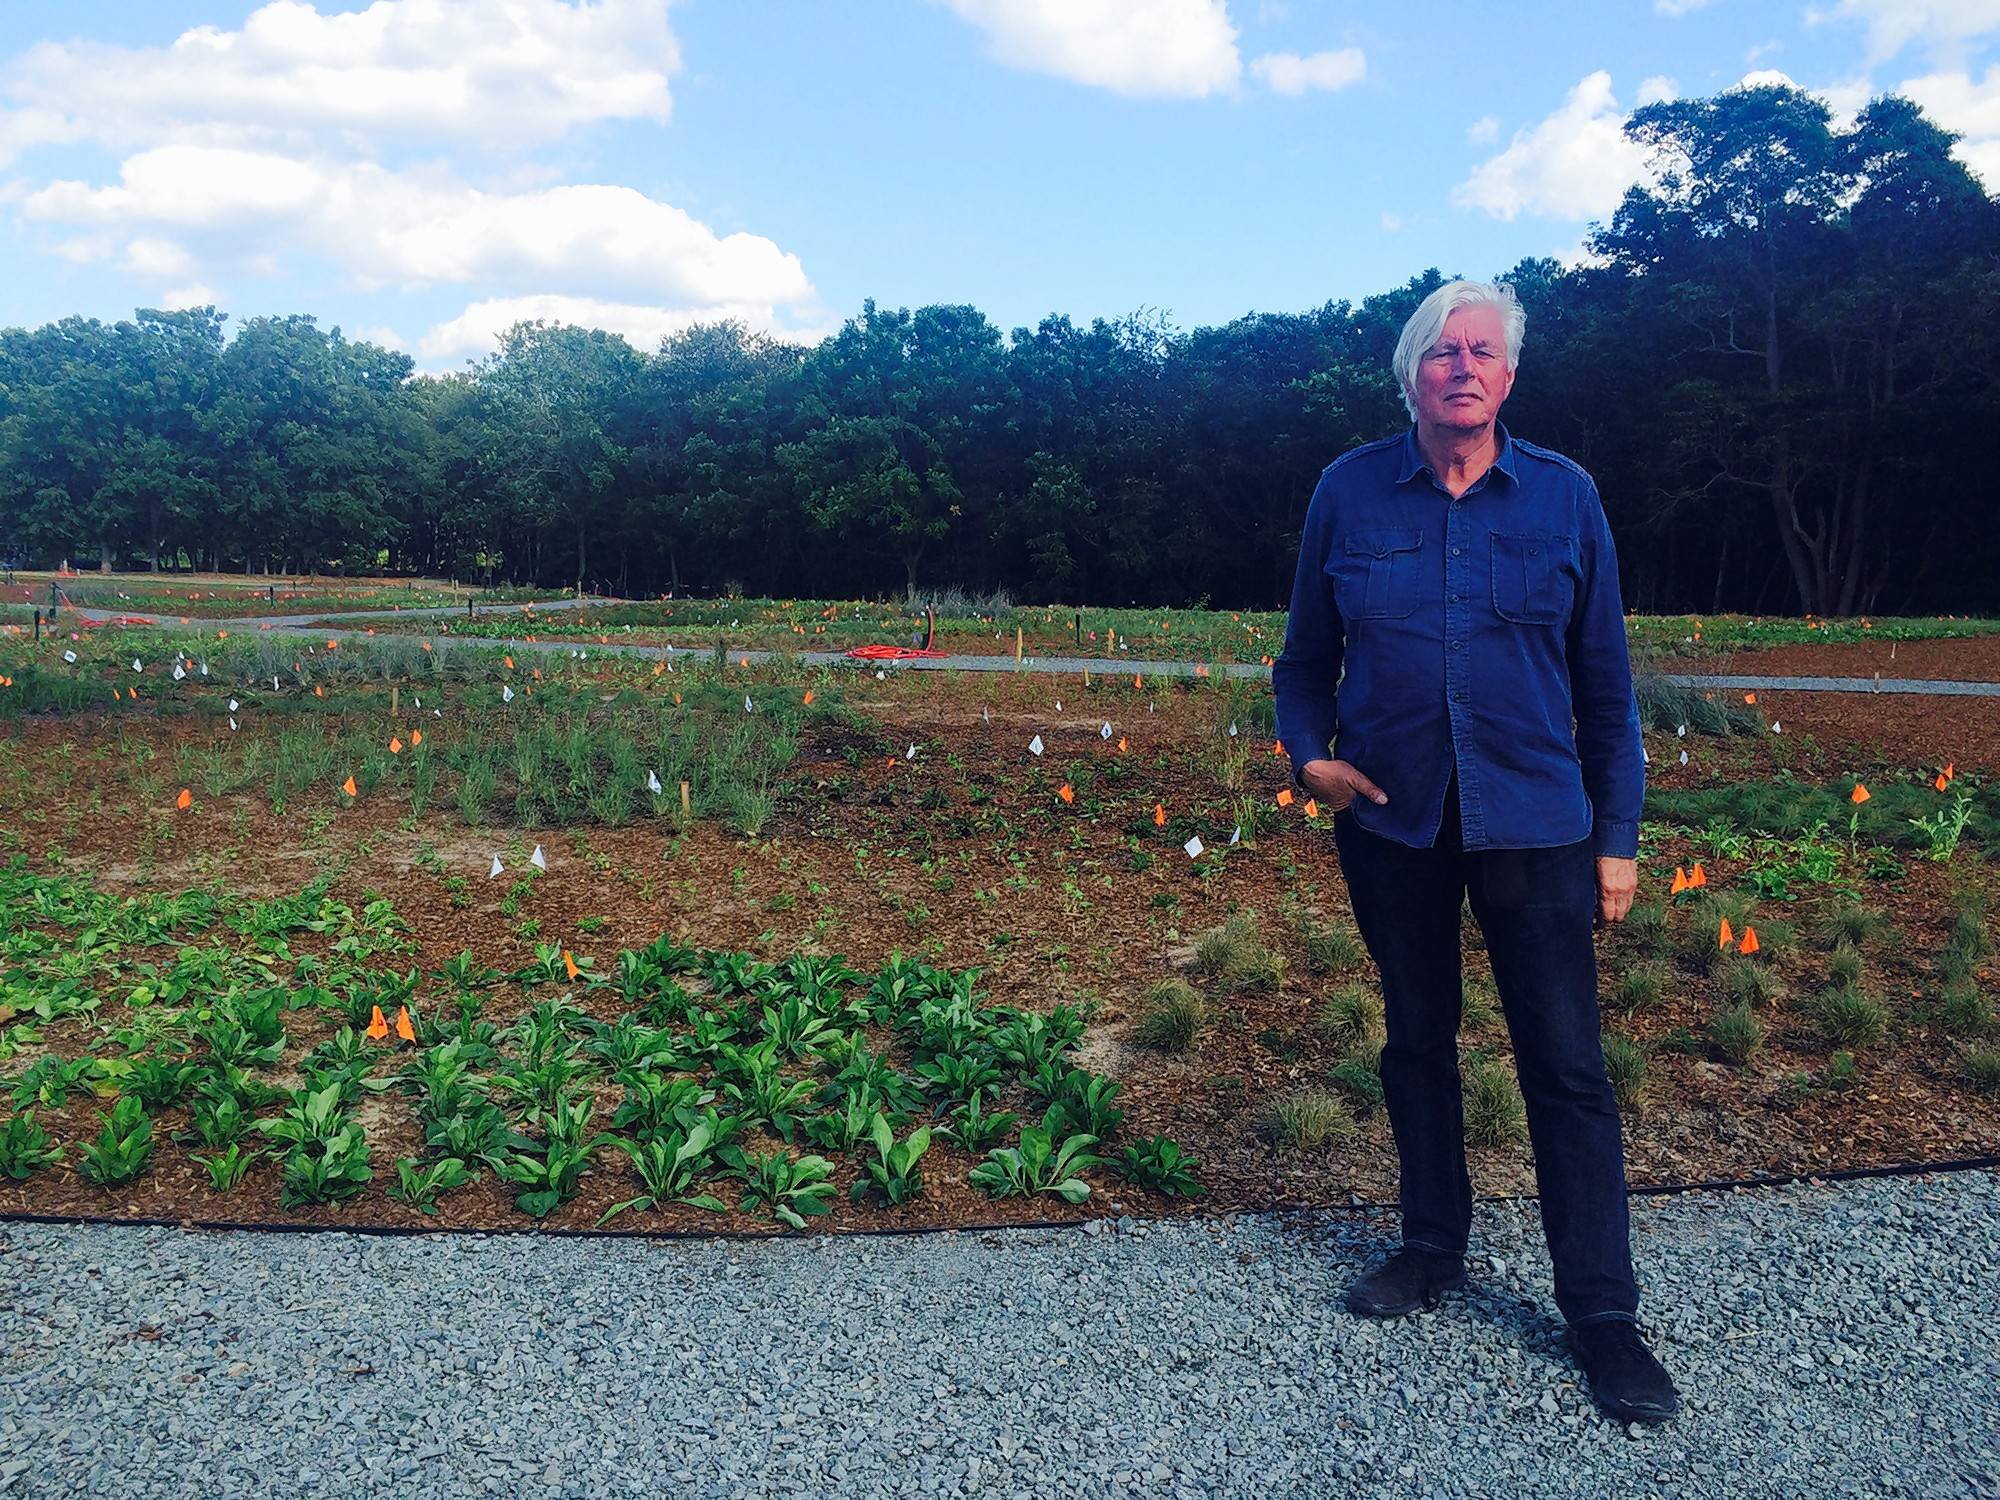 Plant designer Piet Oudolf at his newly installed meadow. Marker flags guided the complex planting schemes for which Oudolf is world famous. The creekside woodland is in the background.